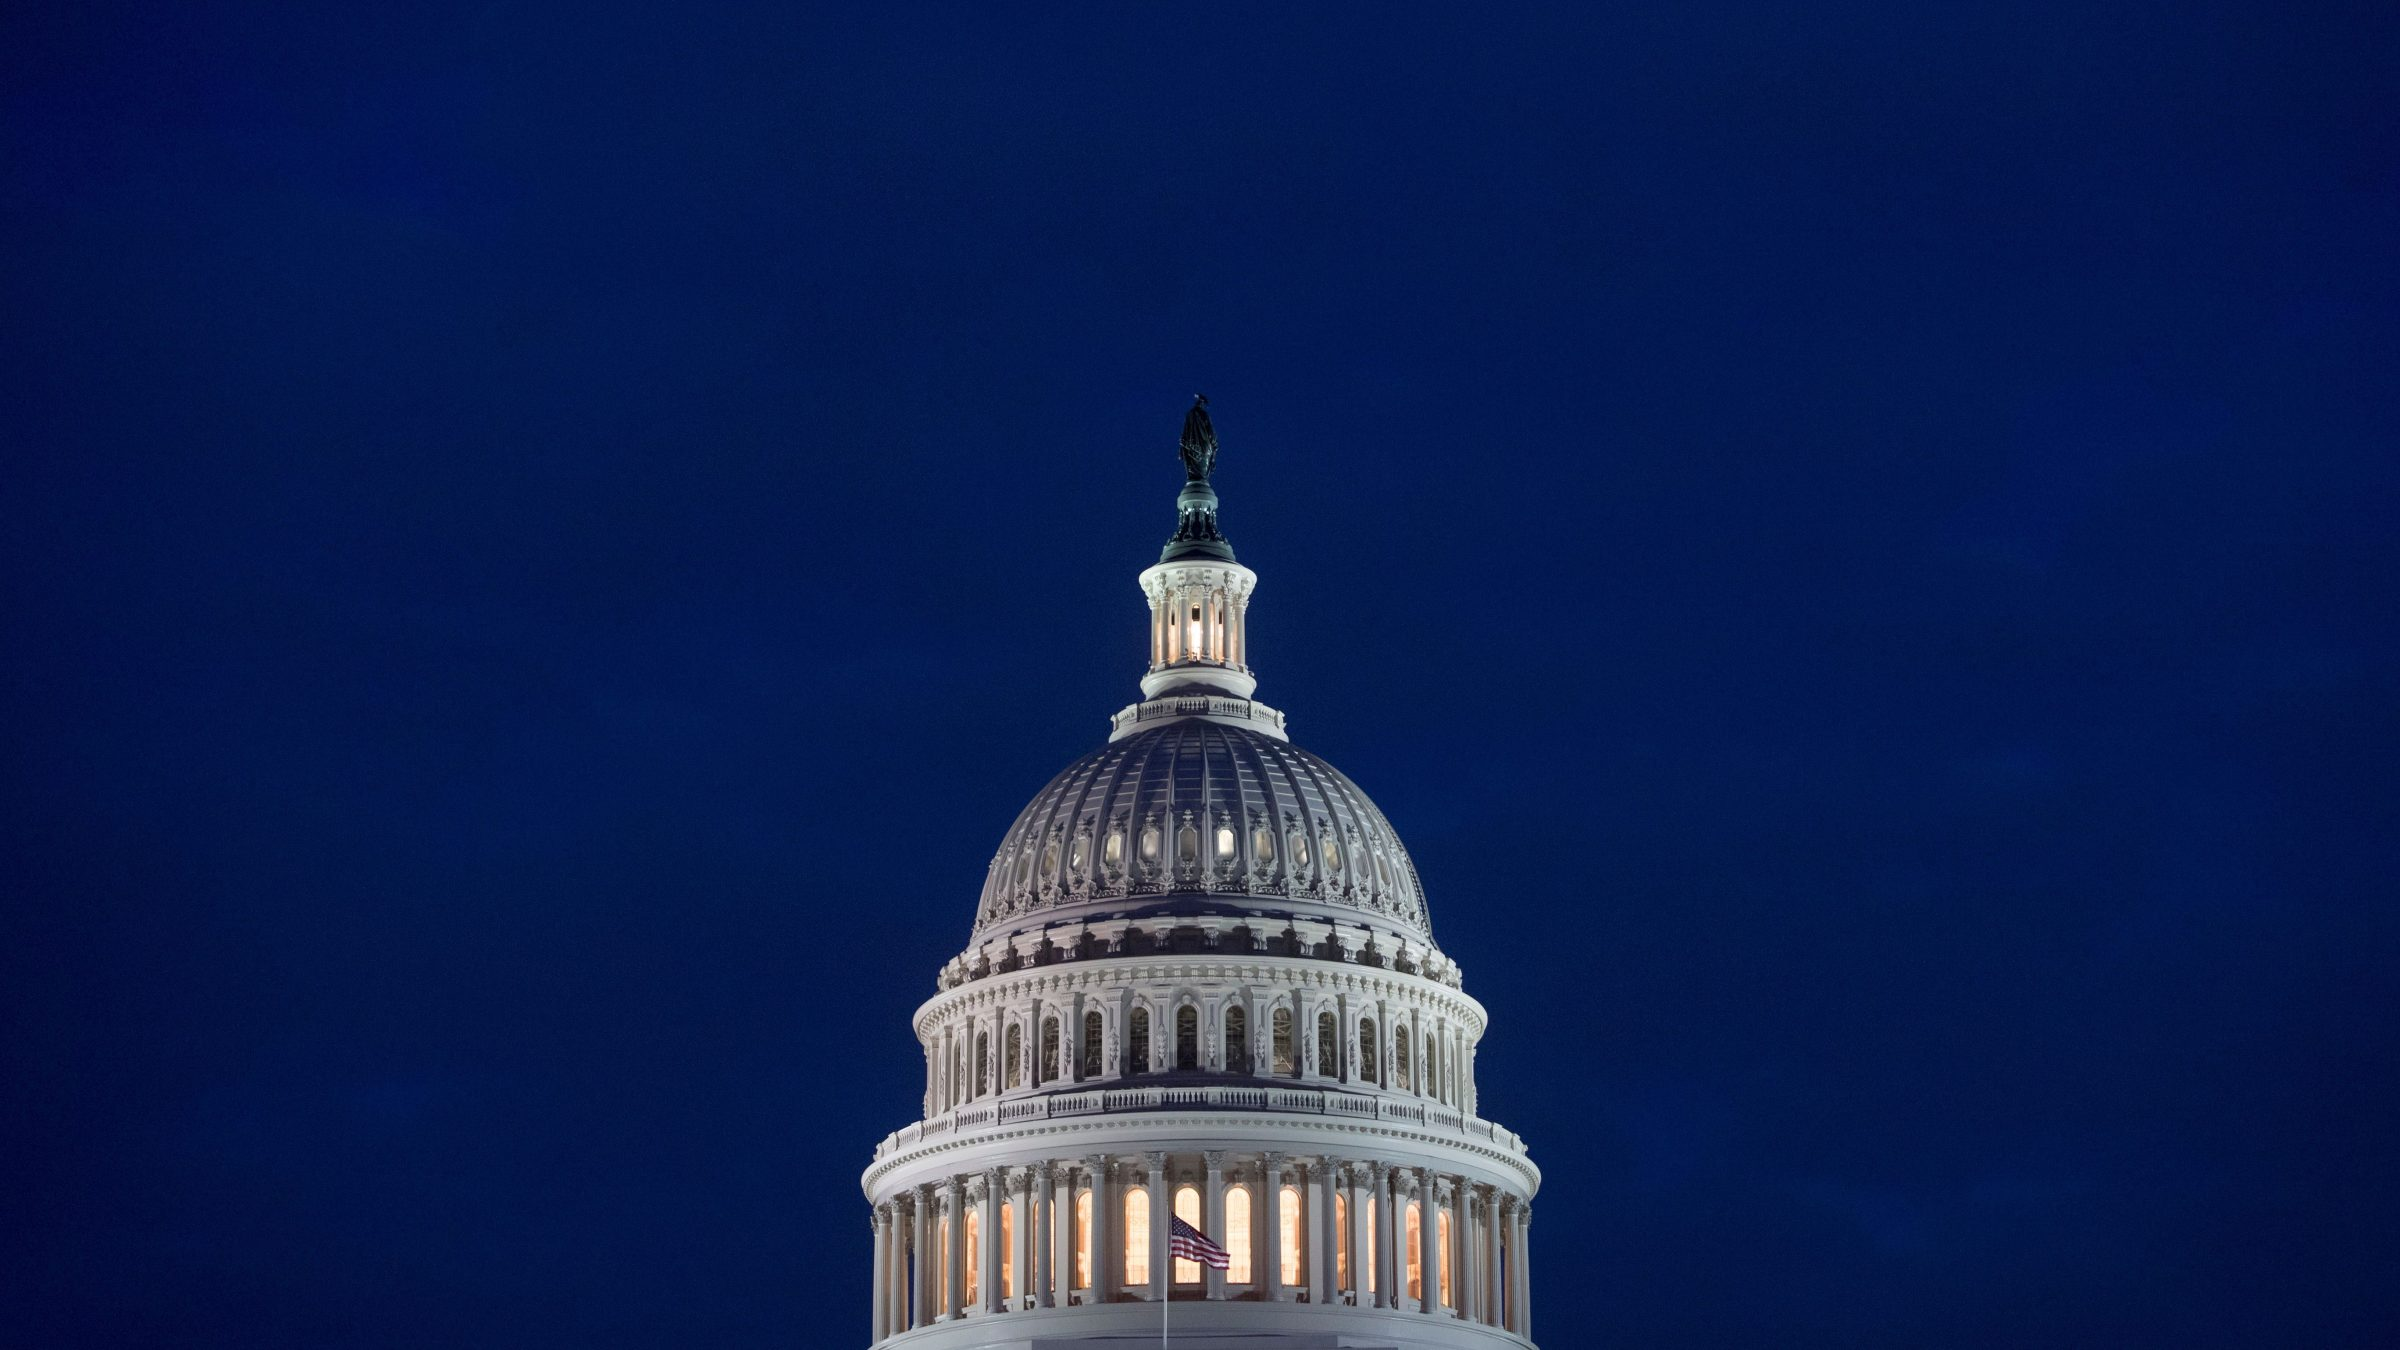 The US Capitol Building is seen at dusk in Washington, DC.